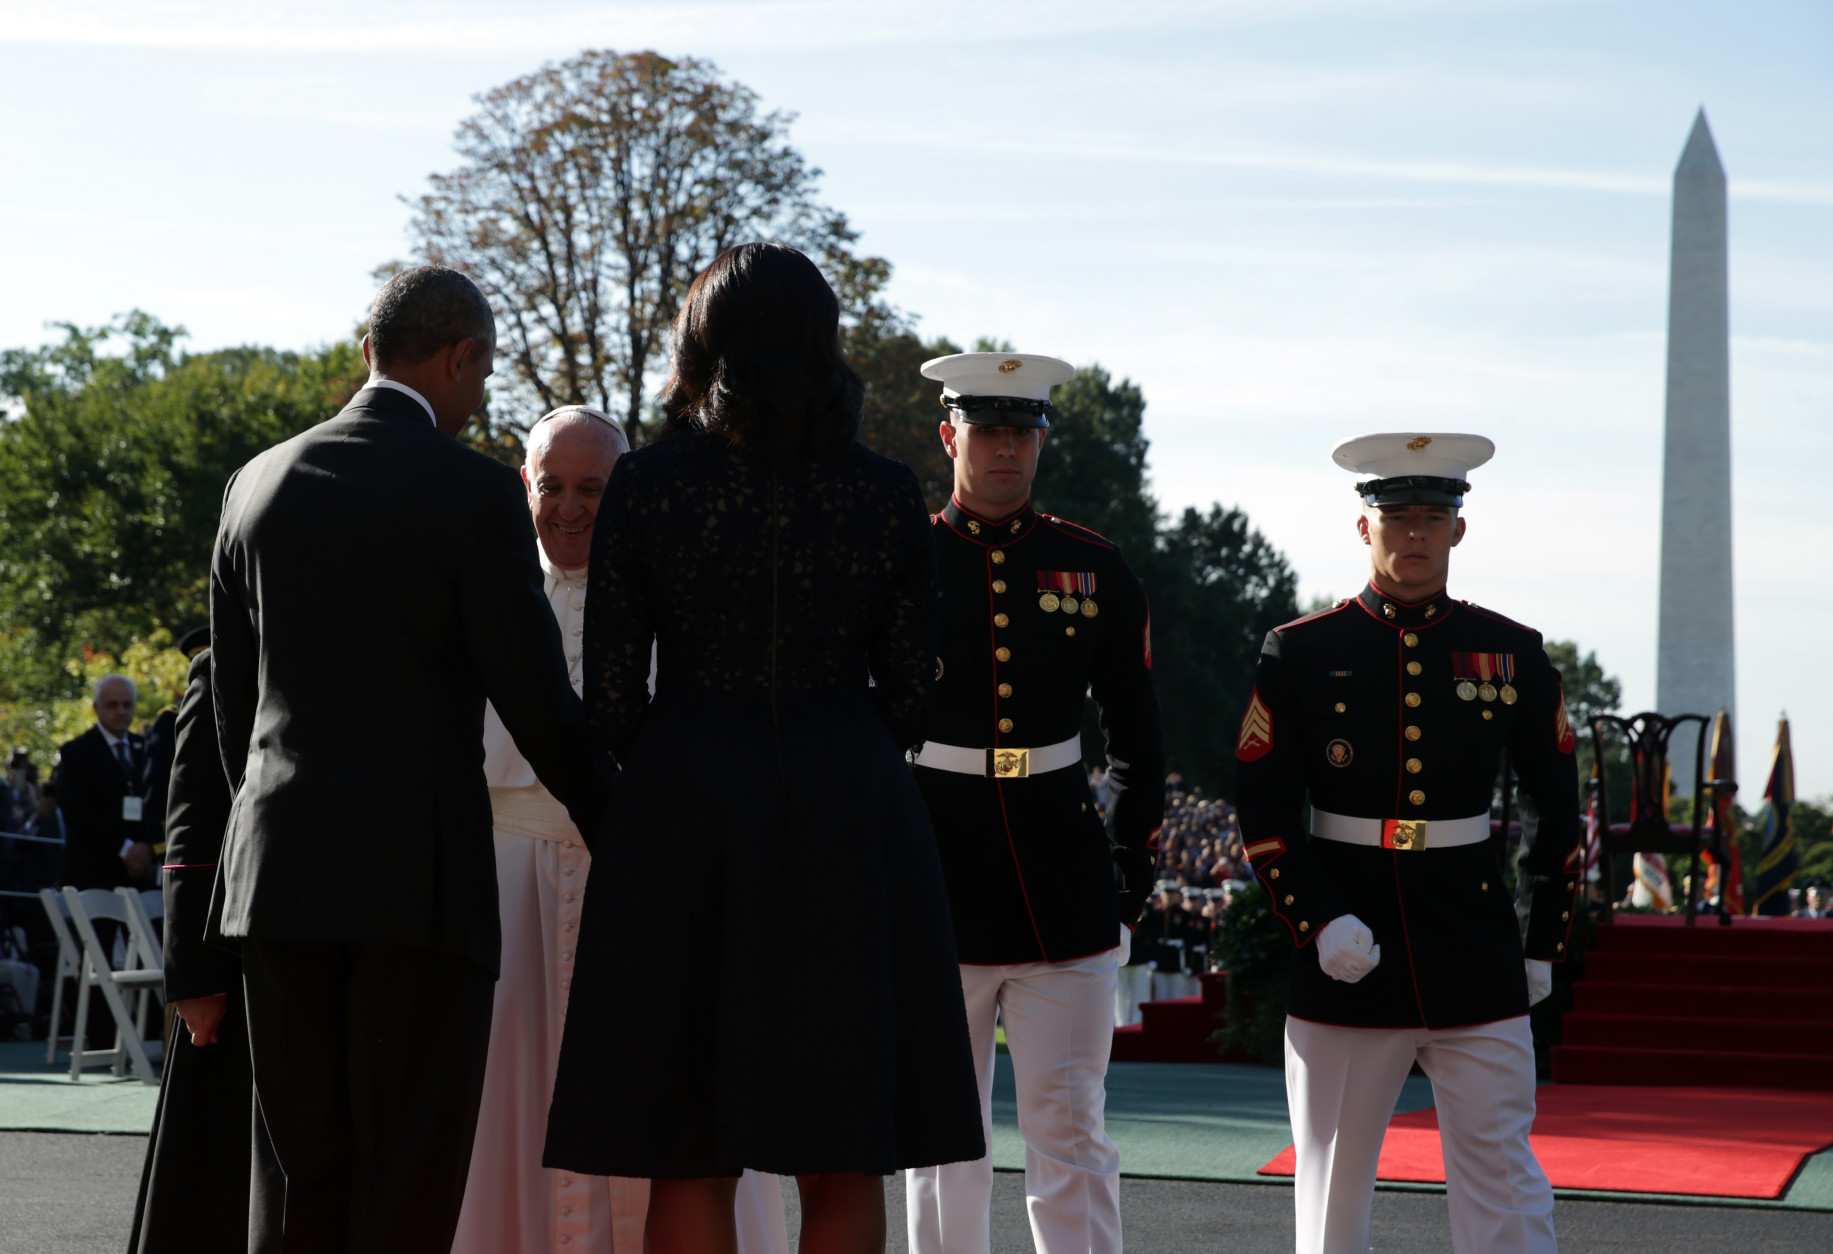 WASHINGTON, DC - SEPTEMBER 23:  U.S. President Barack Obama and first Lady Michelle Obama welcome Pope Francis in an arrival ceremony at the White House on September 23, 2015 in Washington, DC. The Pope begins his first trip to the United States at the White House followed by a visit to St. Matthew's Cathedral, and will then hold a Mass on the grounds of the Basilica of the National Shrine of the Immaculate Conception.  (Photo by Alex Wong/Getty Images)